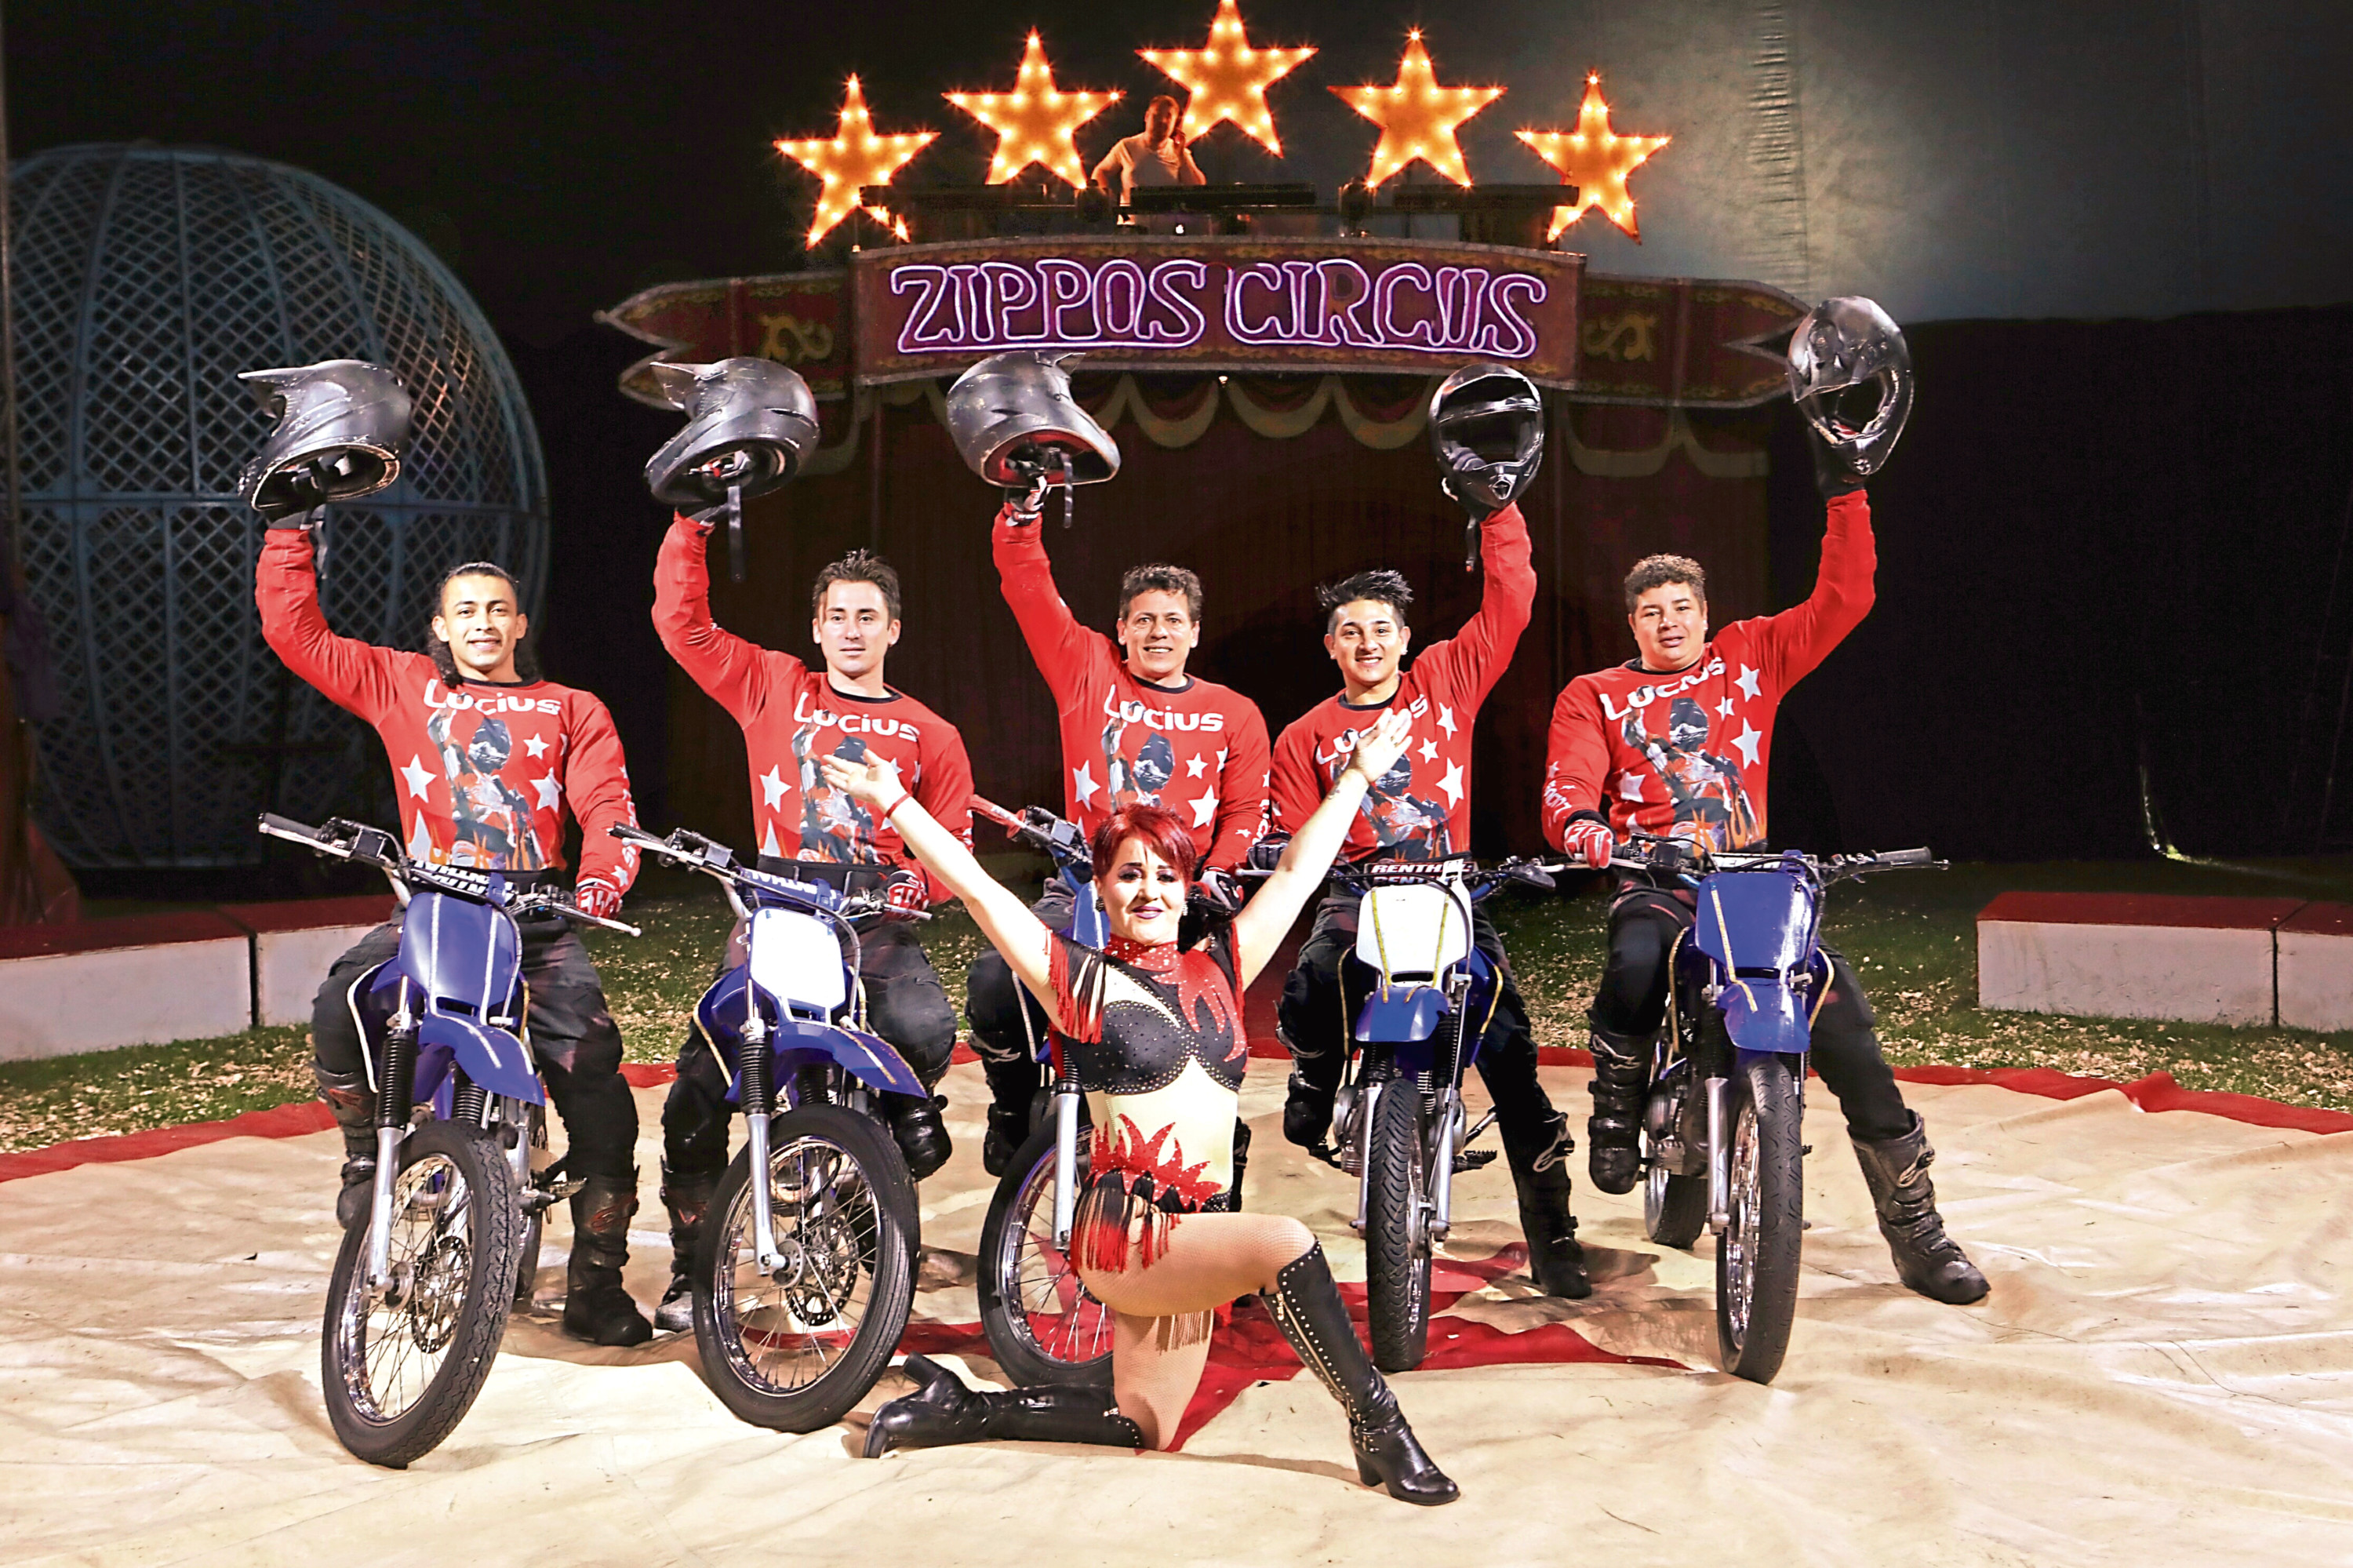 The Lucius team of motorcyclists who will be thrilling audiences in the Globe of Death.